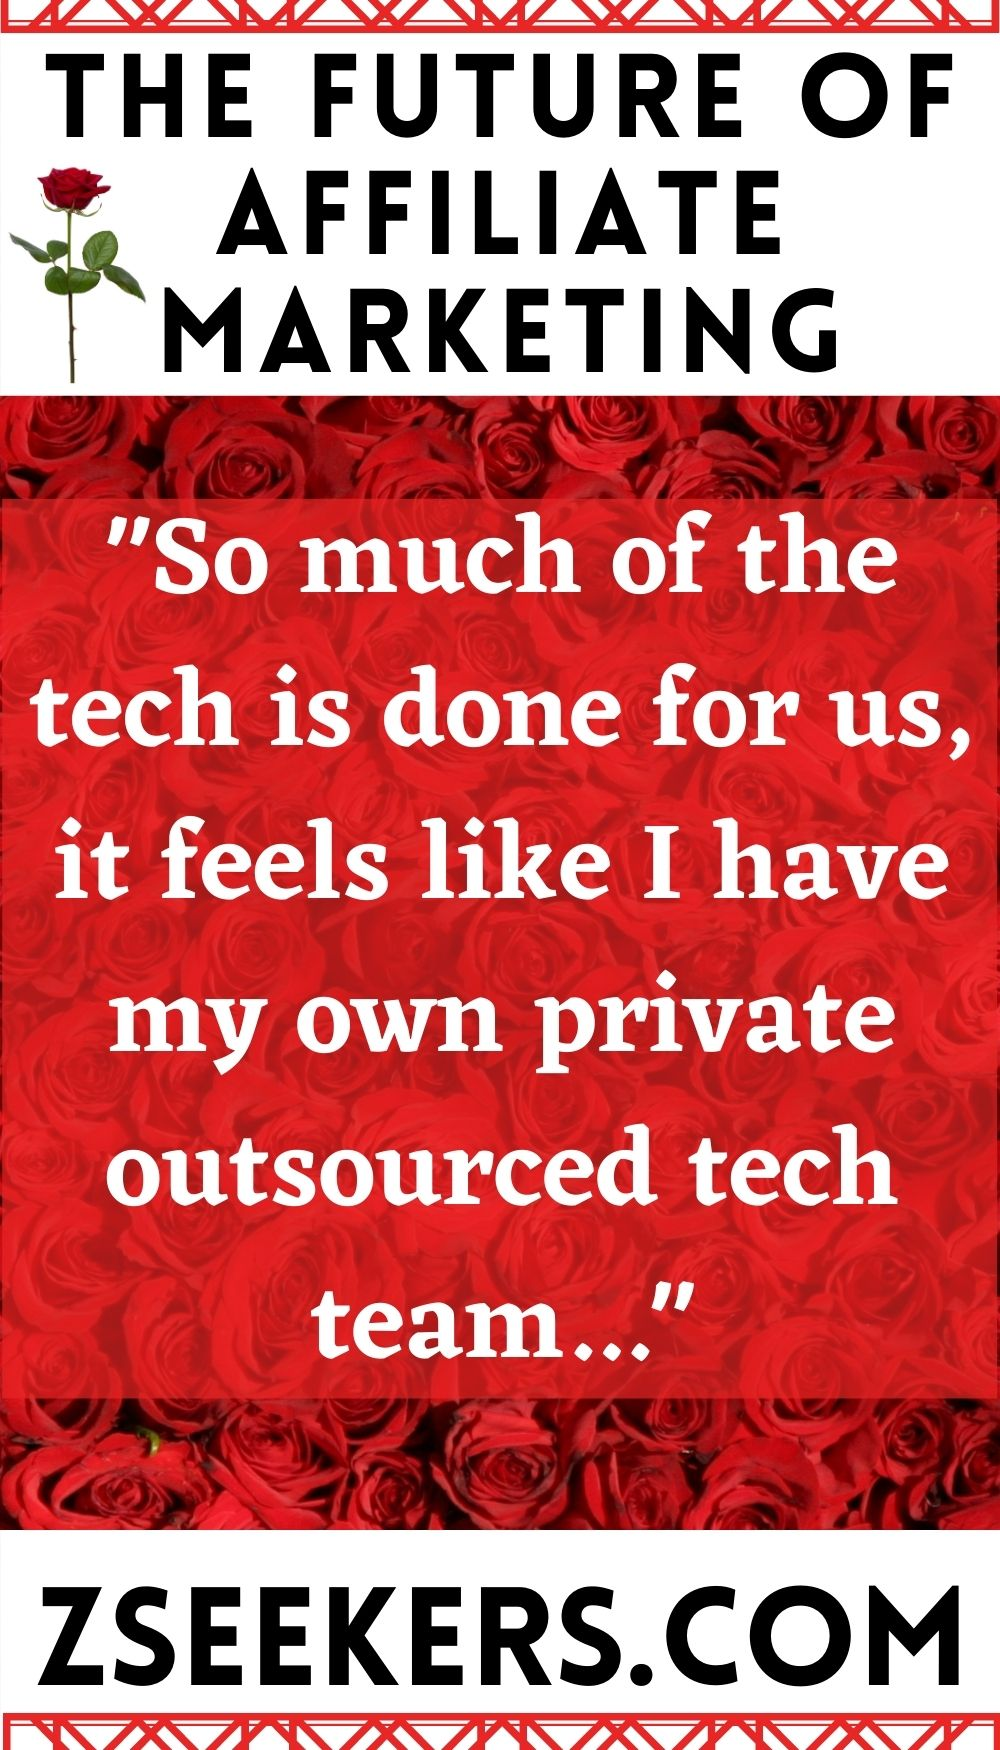 the future of affiliate marketing is here: in our group, so much of the tech is one for us, it feels like i have my own private outsourced tech team...